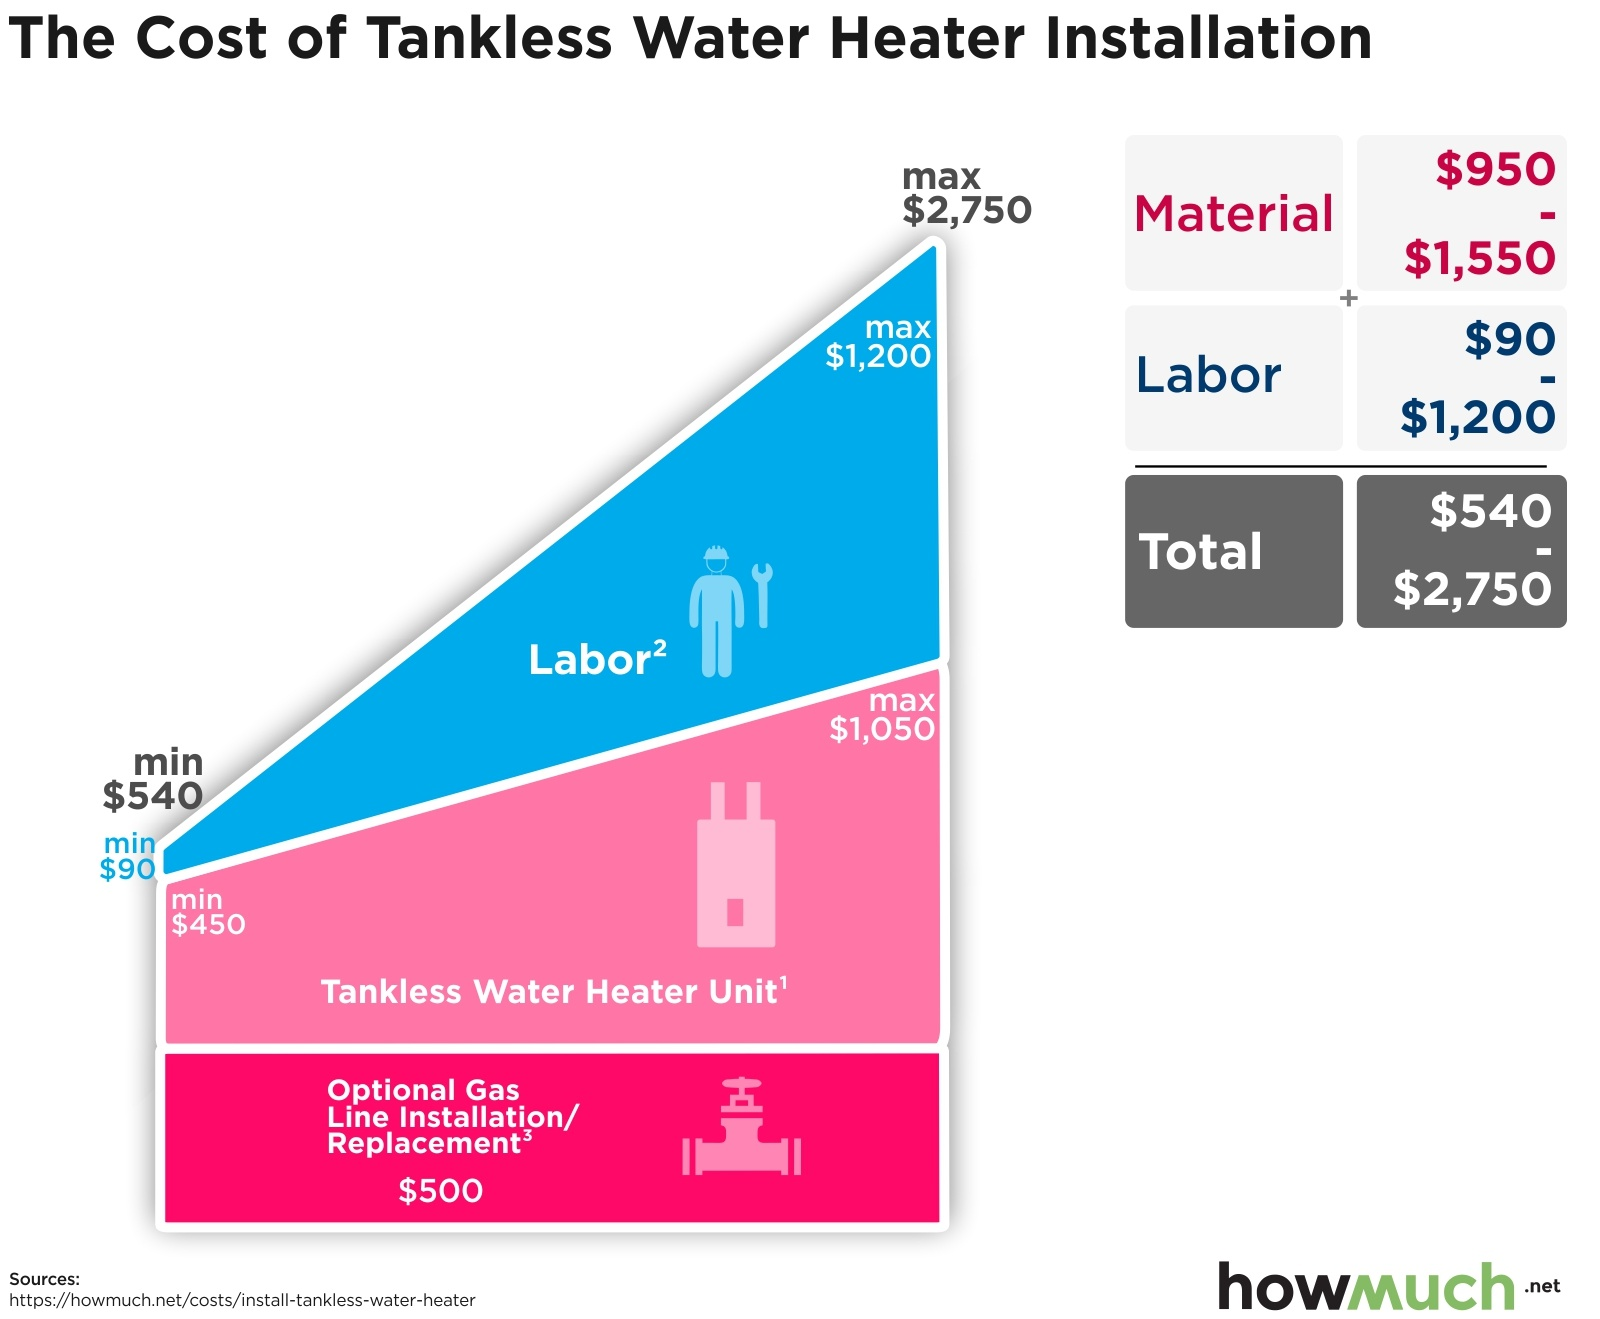 The Cost of Tankless Water Heater Installation